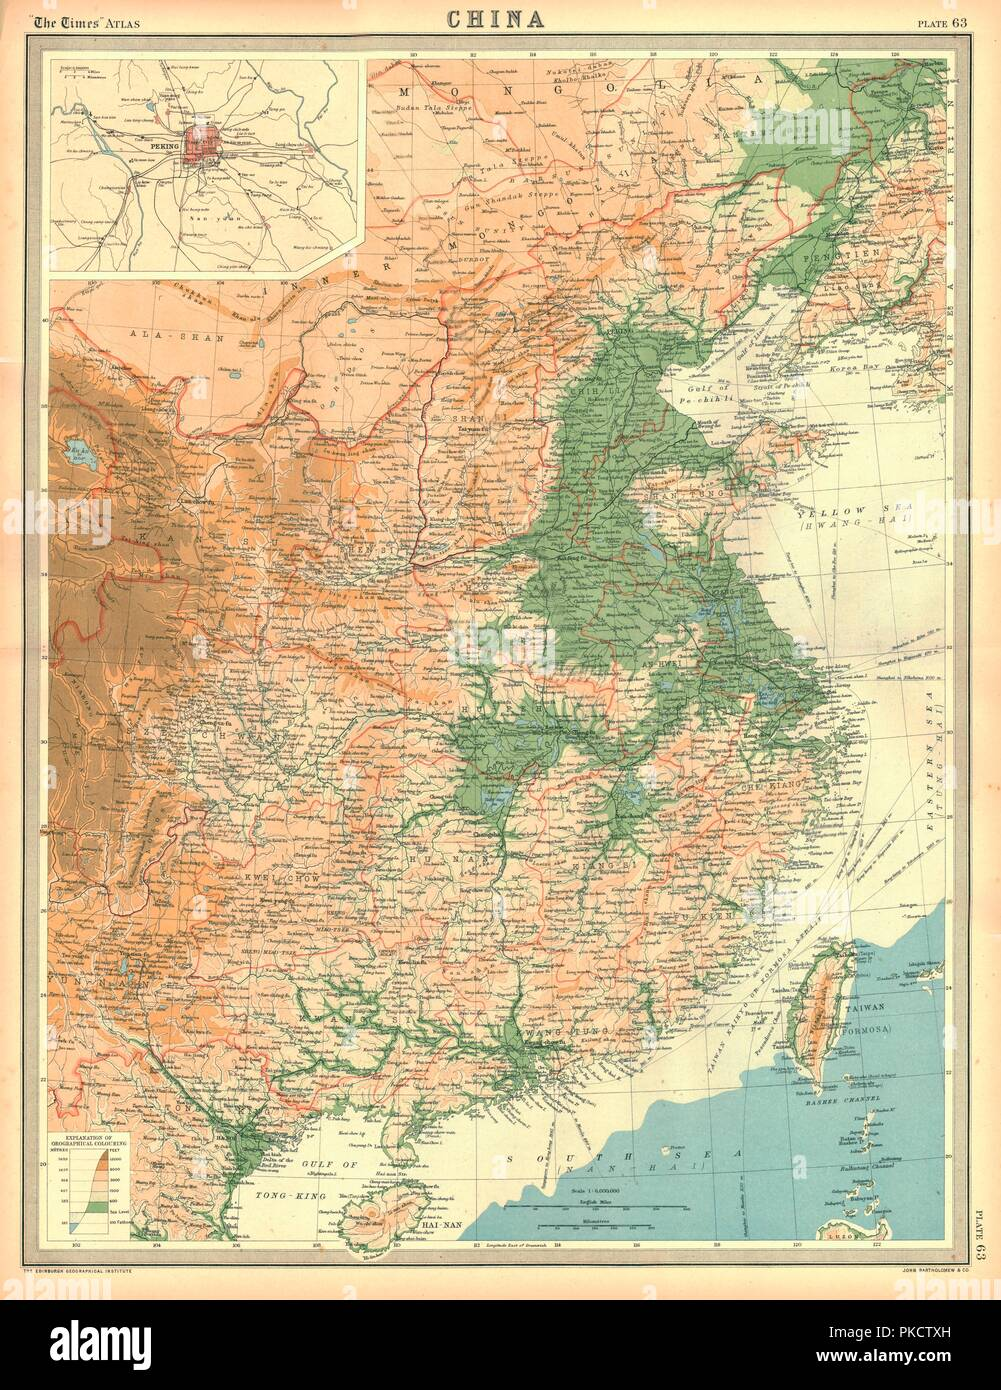 Geographical map of China. Plate 63 from The Times Atlas. - Stock Image